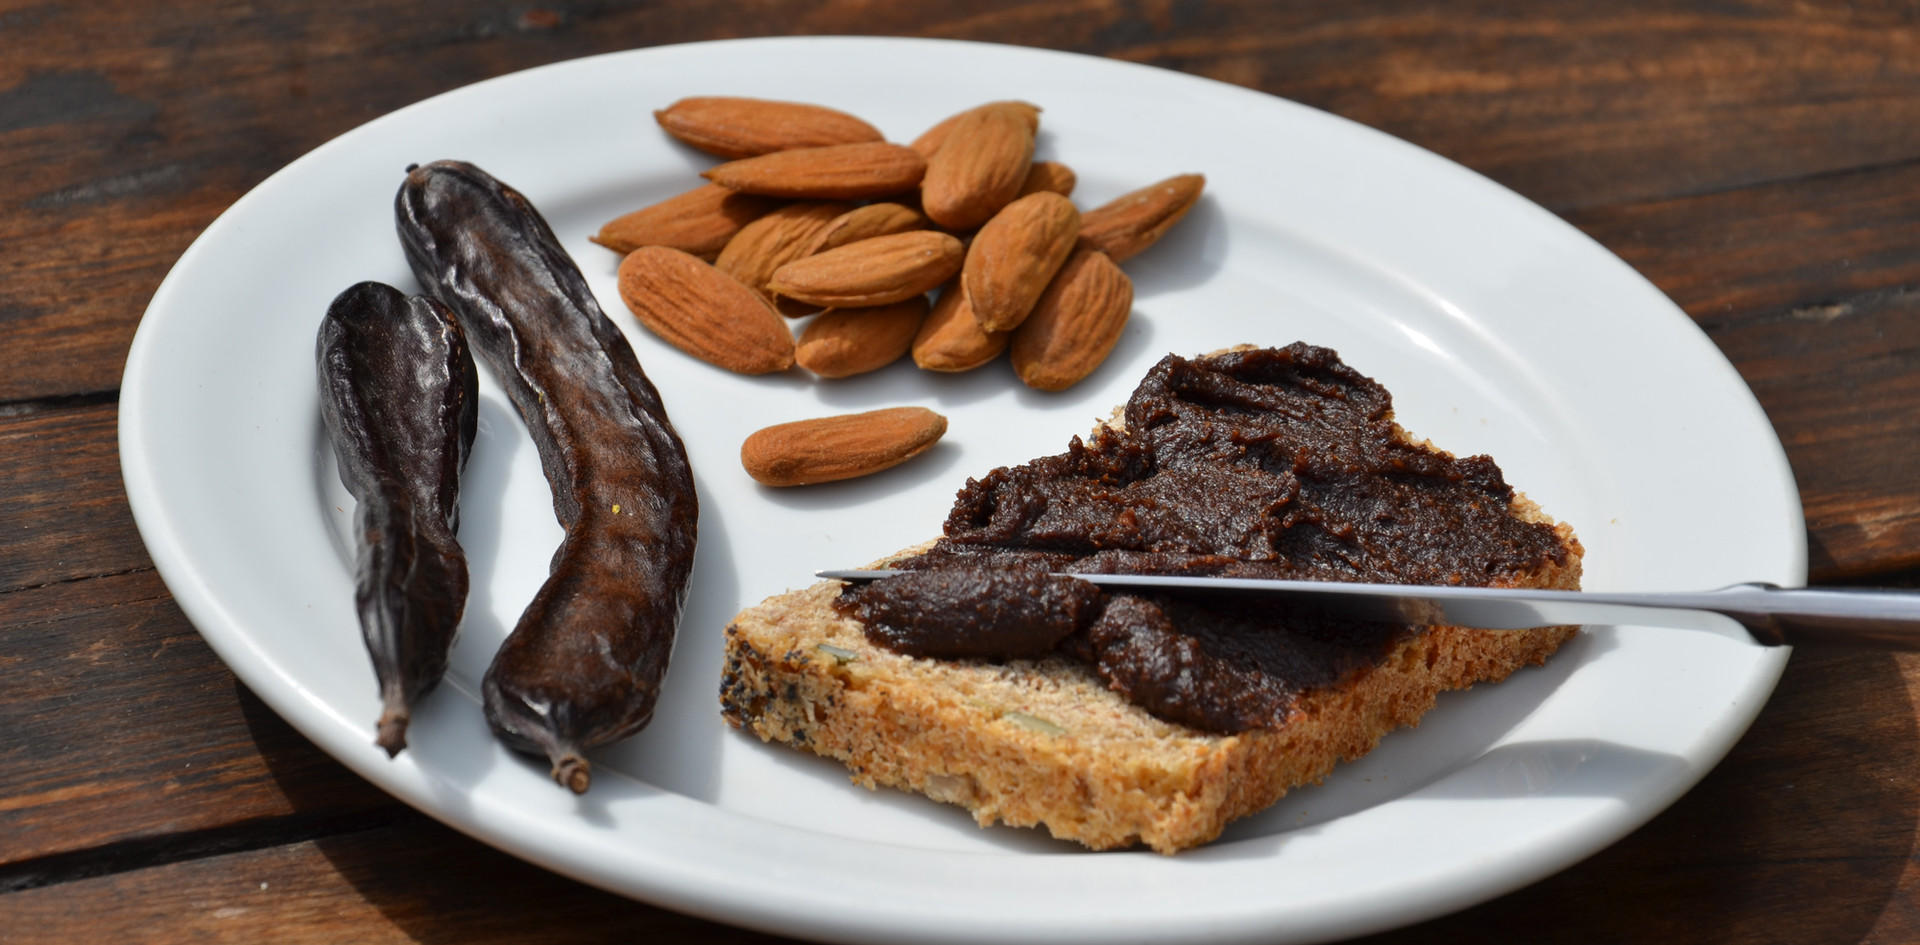 Carob and Almond Spread